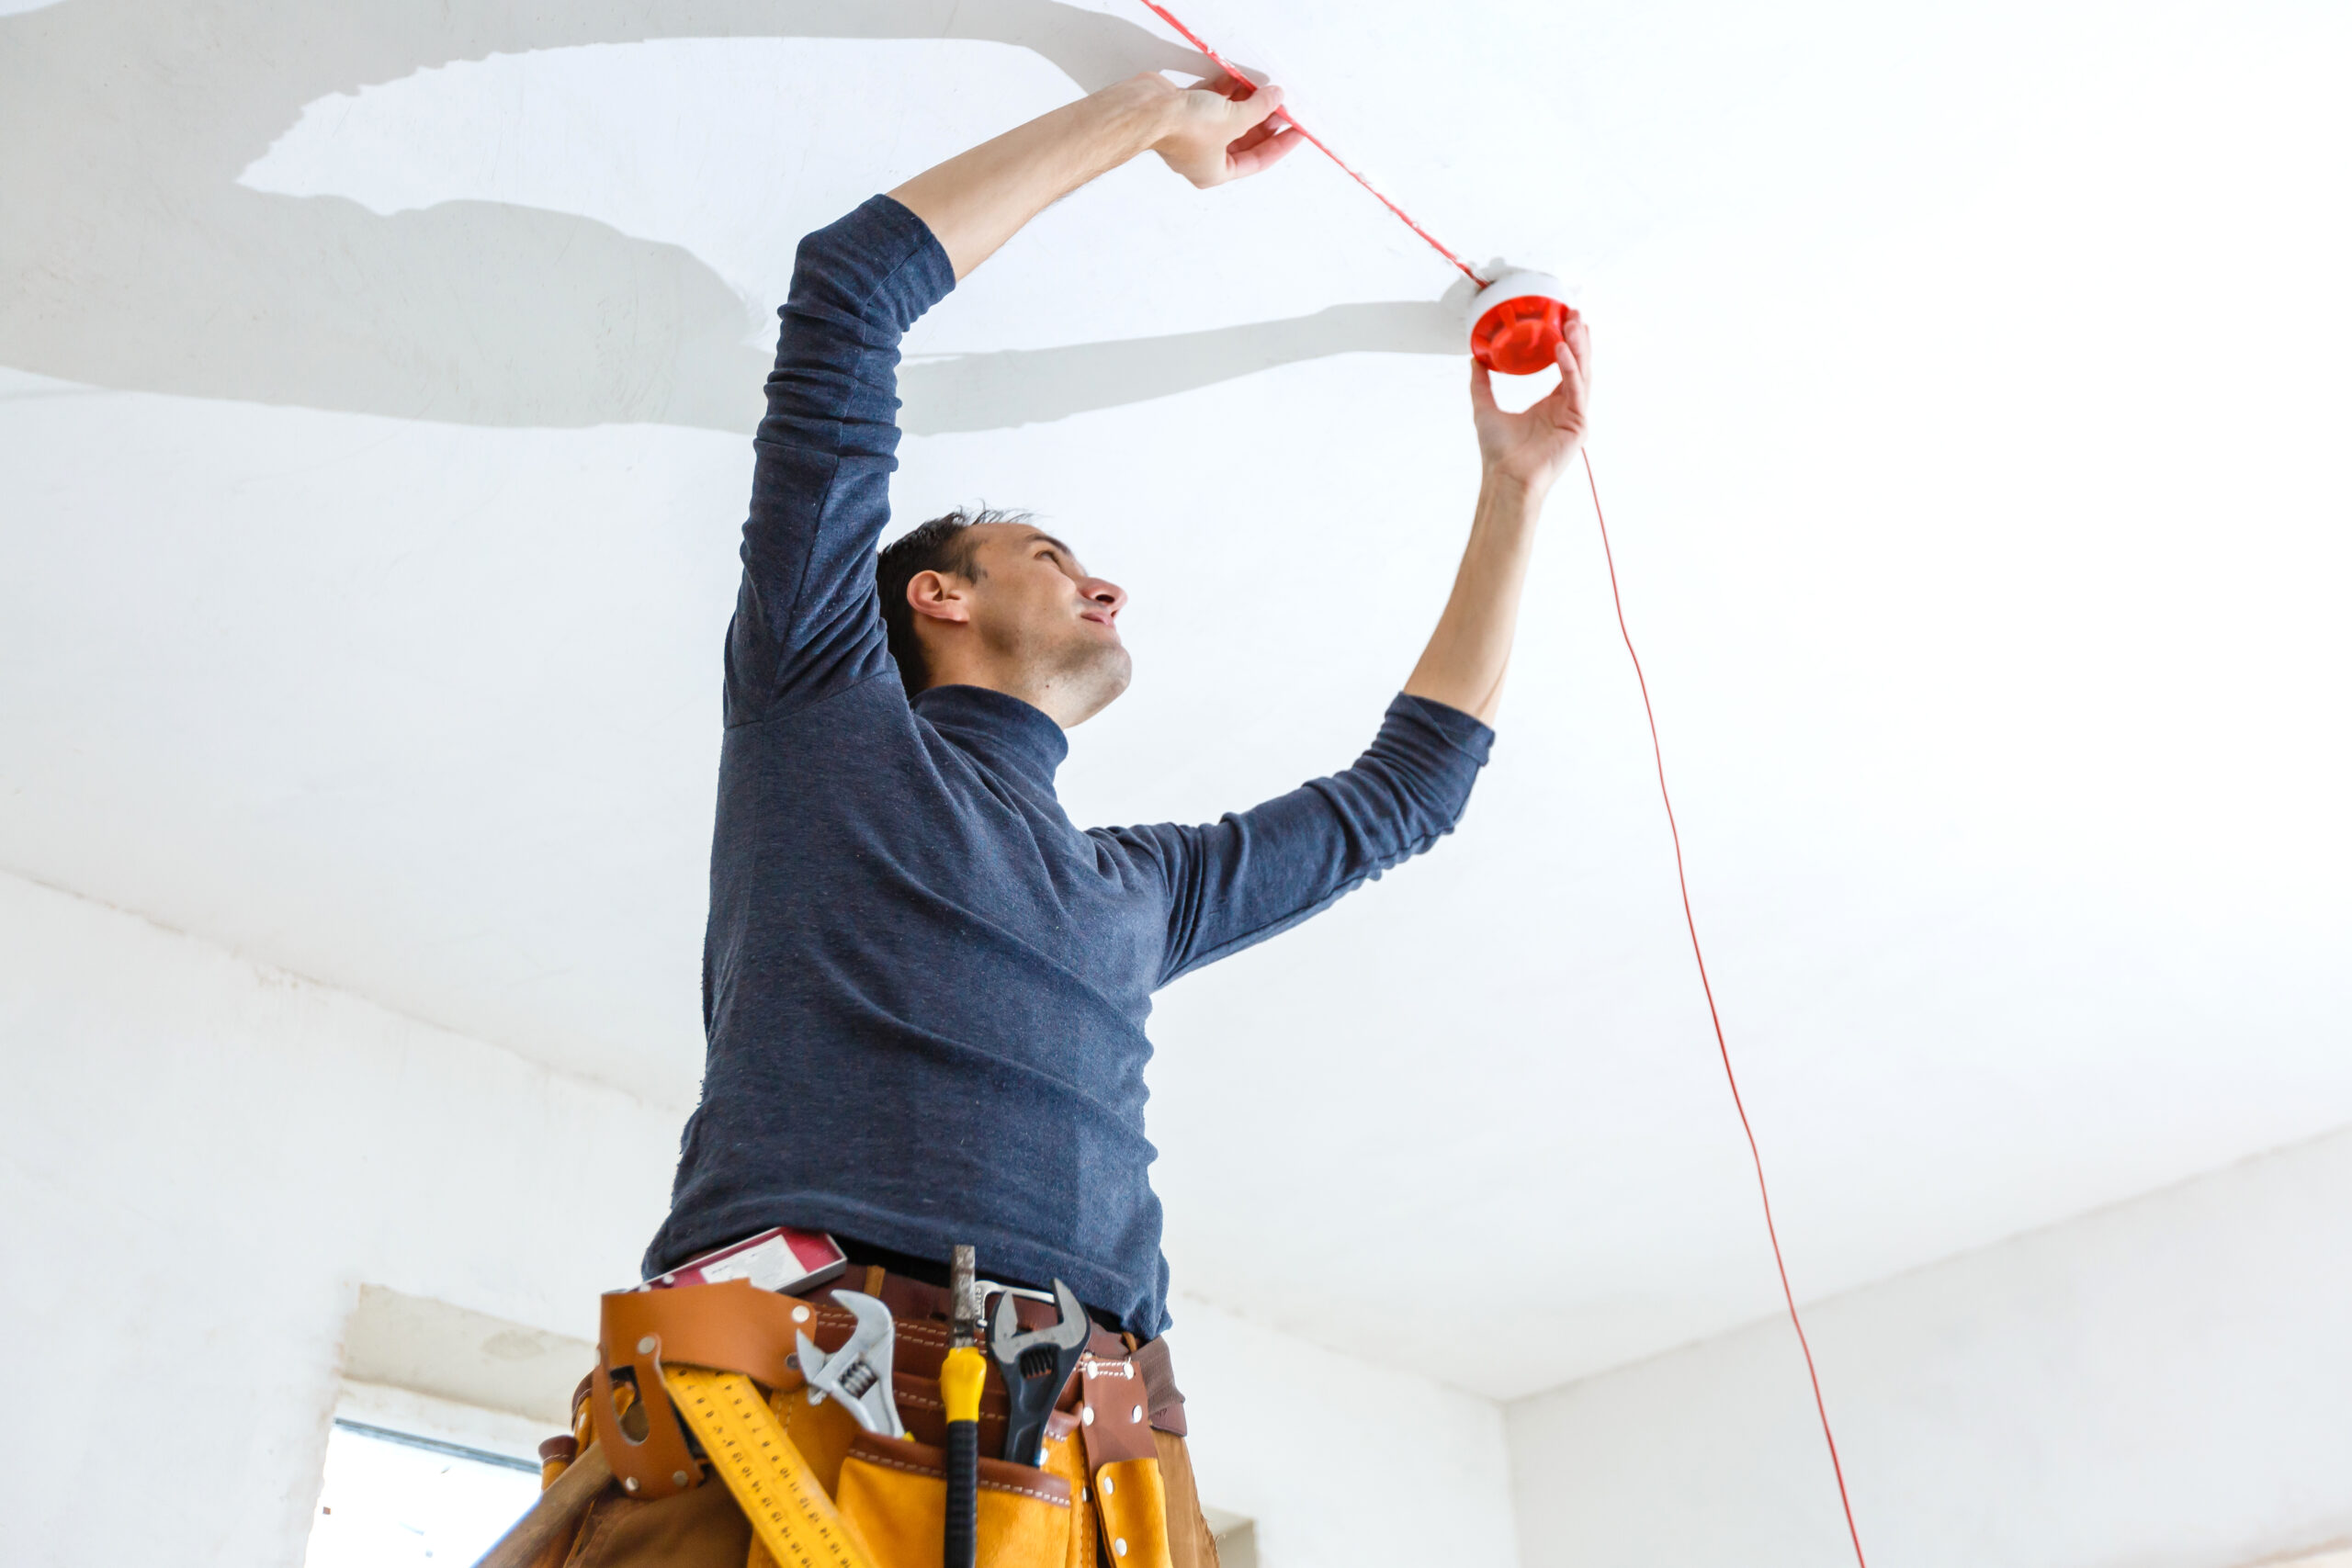 electrician-installing-fire-alarm-system-indoors